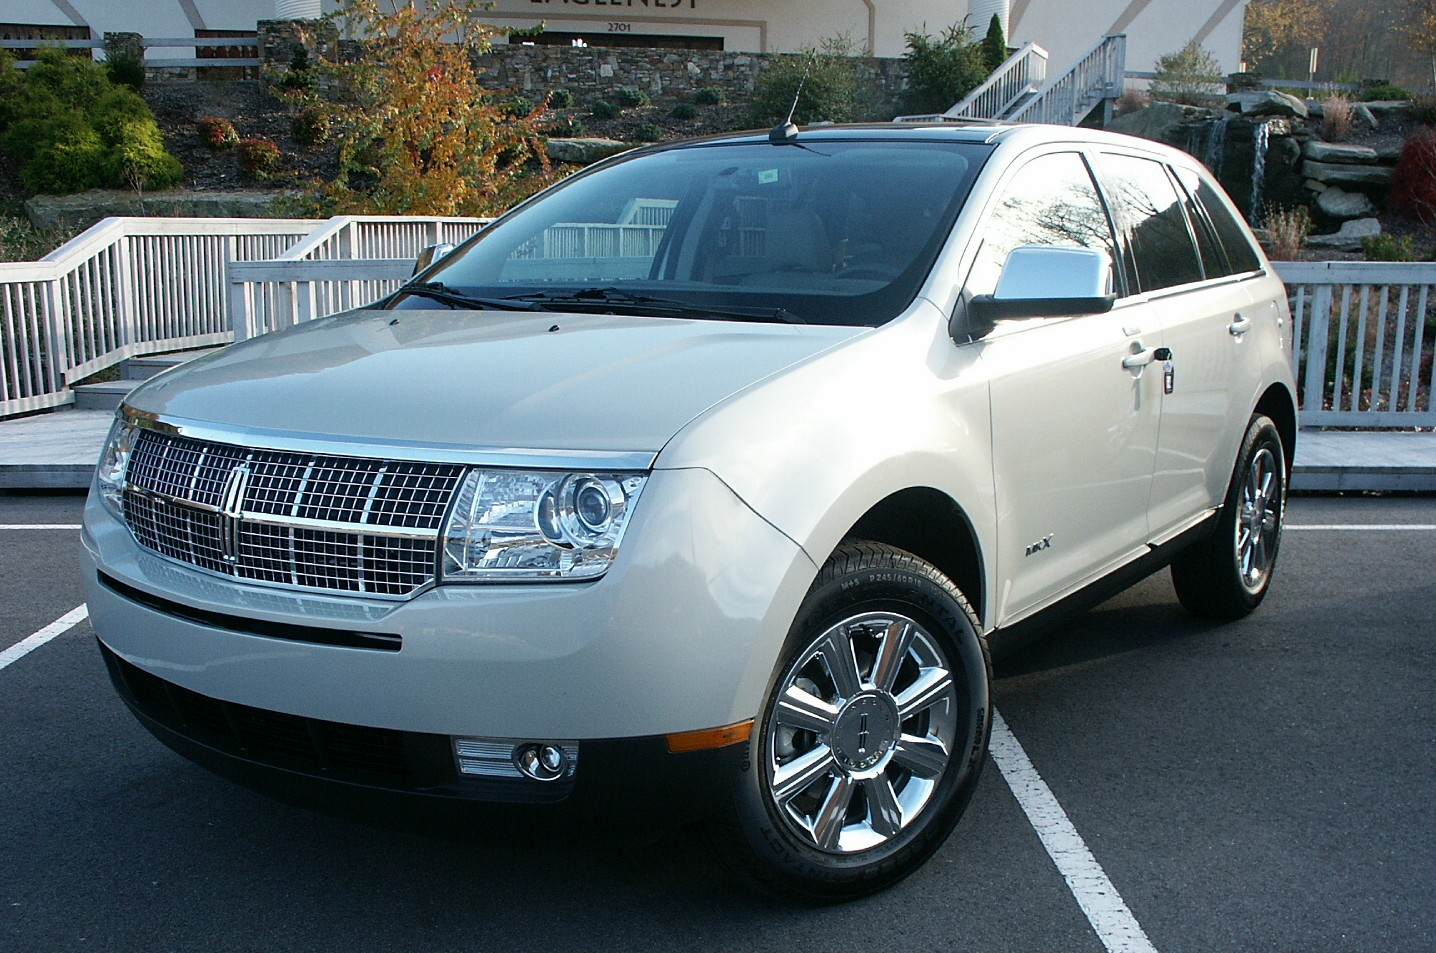 2008 Lincoln Mkx Pictures Cargurus